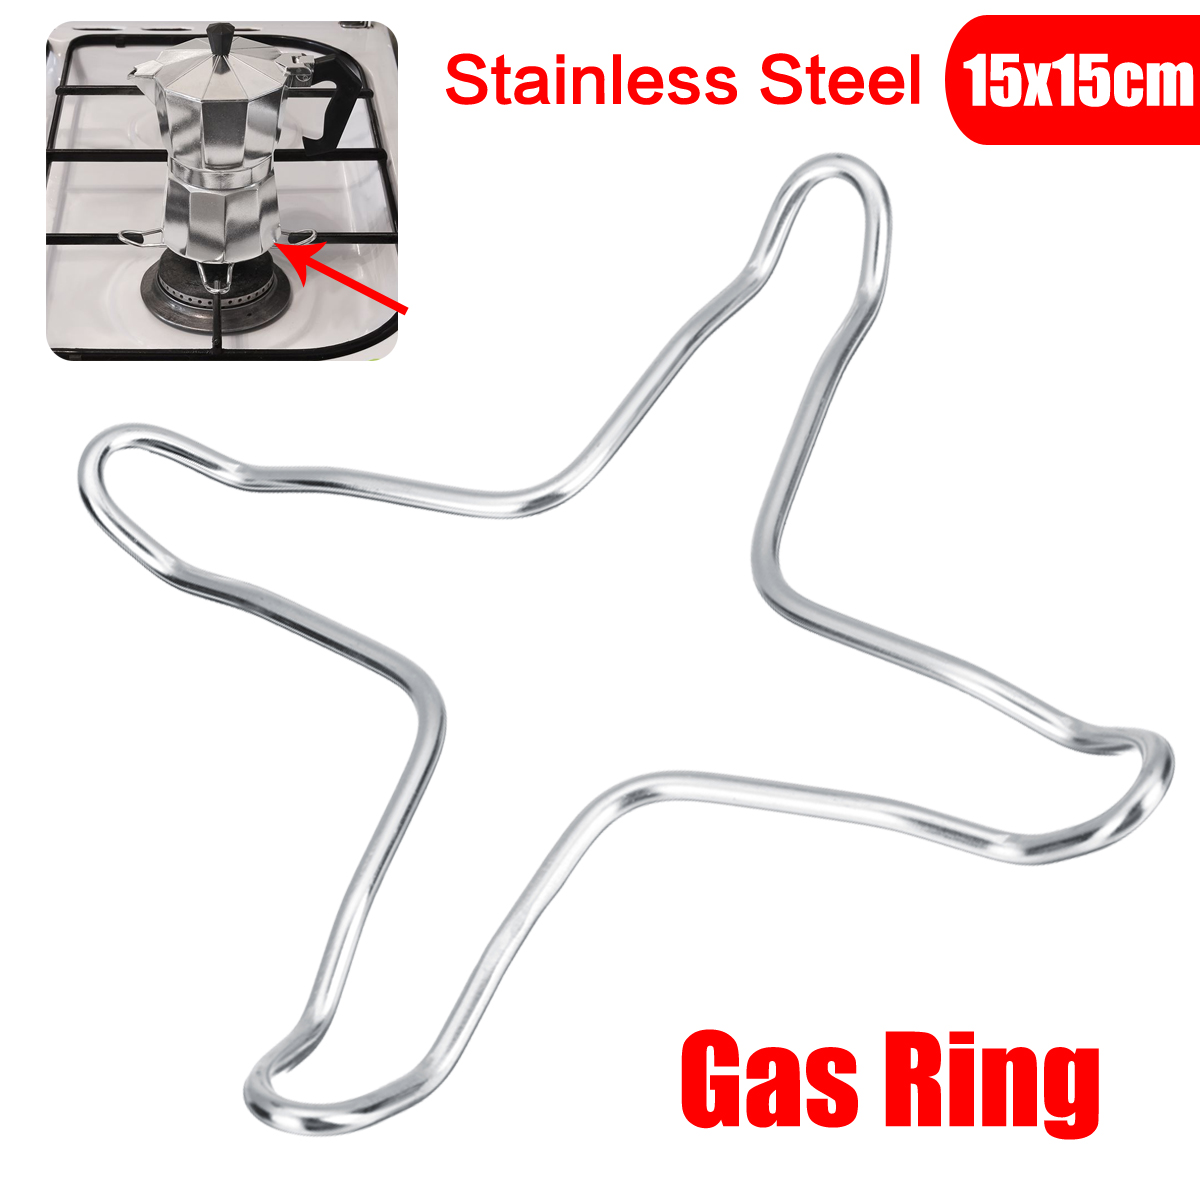 Stainless Steel Gas Ring Hob Stove Top Reducer Coffee Pot Rest Coaster